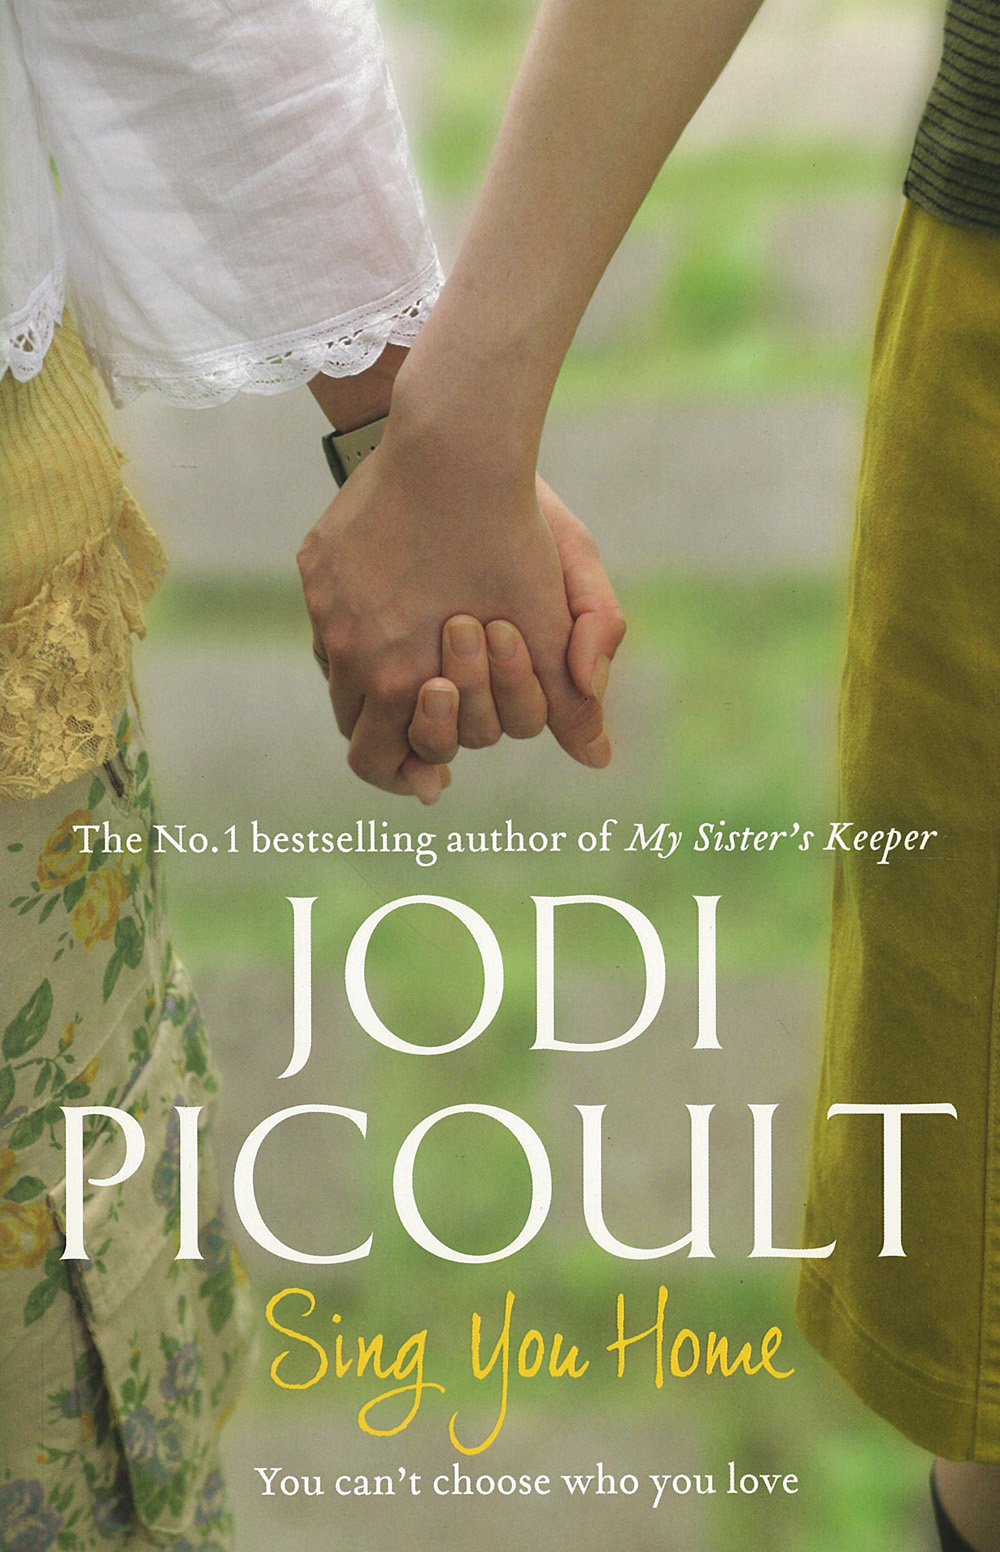 Sing You Home by Jodi Picoult Amazon | Goodreads